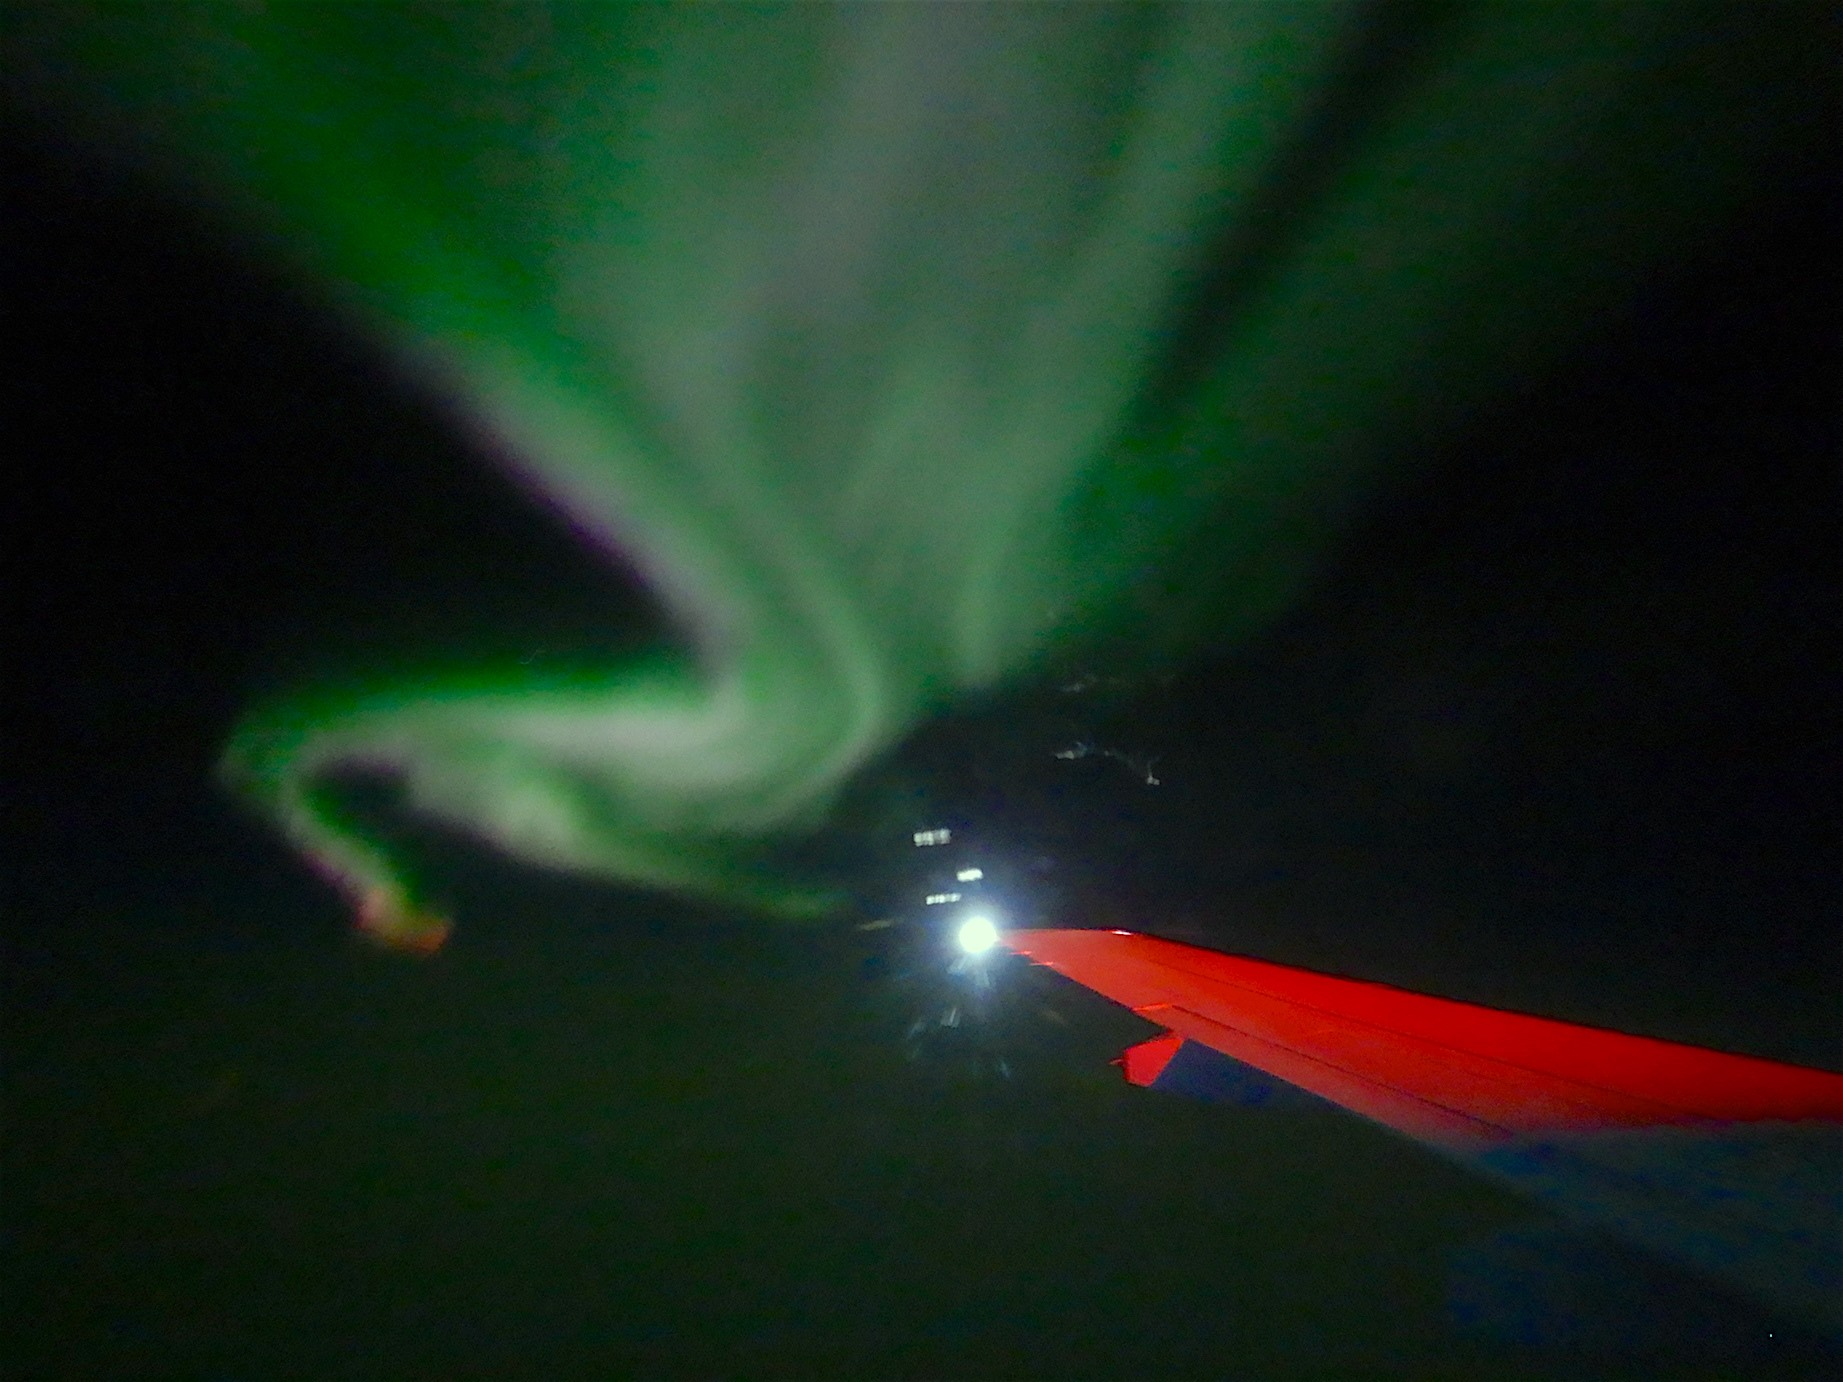 Aurora Borealis : we often saw them at night from the ship during the expedition. Here is one on our return flight from Tiksi to Yakutsk. The Aurora is an incredible light show caused by collisions between electrically charged particles released from the sun that enter the earth's atmosphere and collide with gases such as oxygen and nitrogen. By the way they can be seen in Antarctica too!